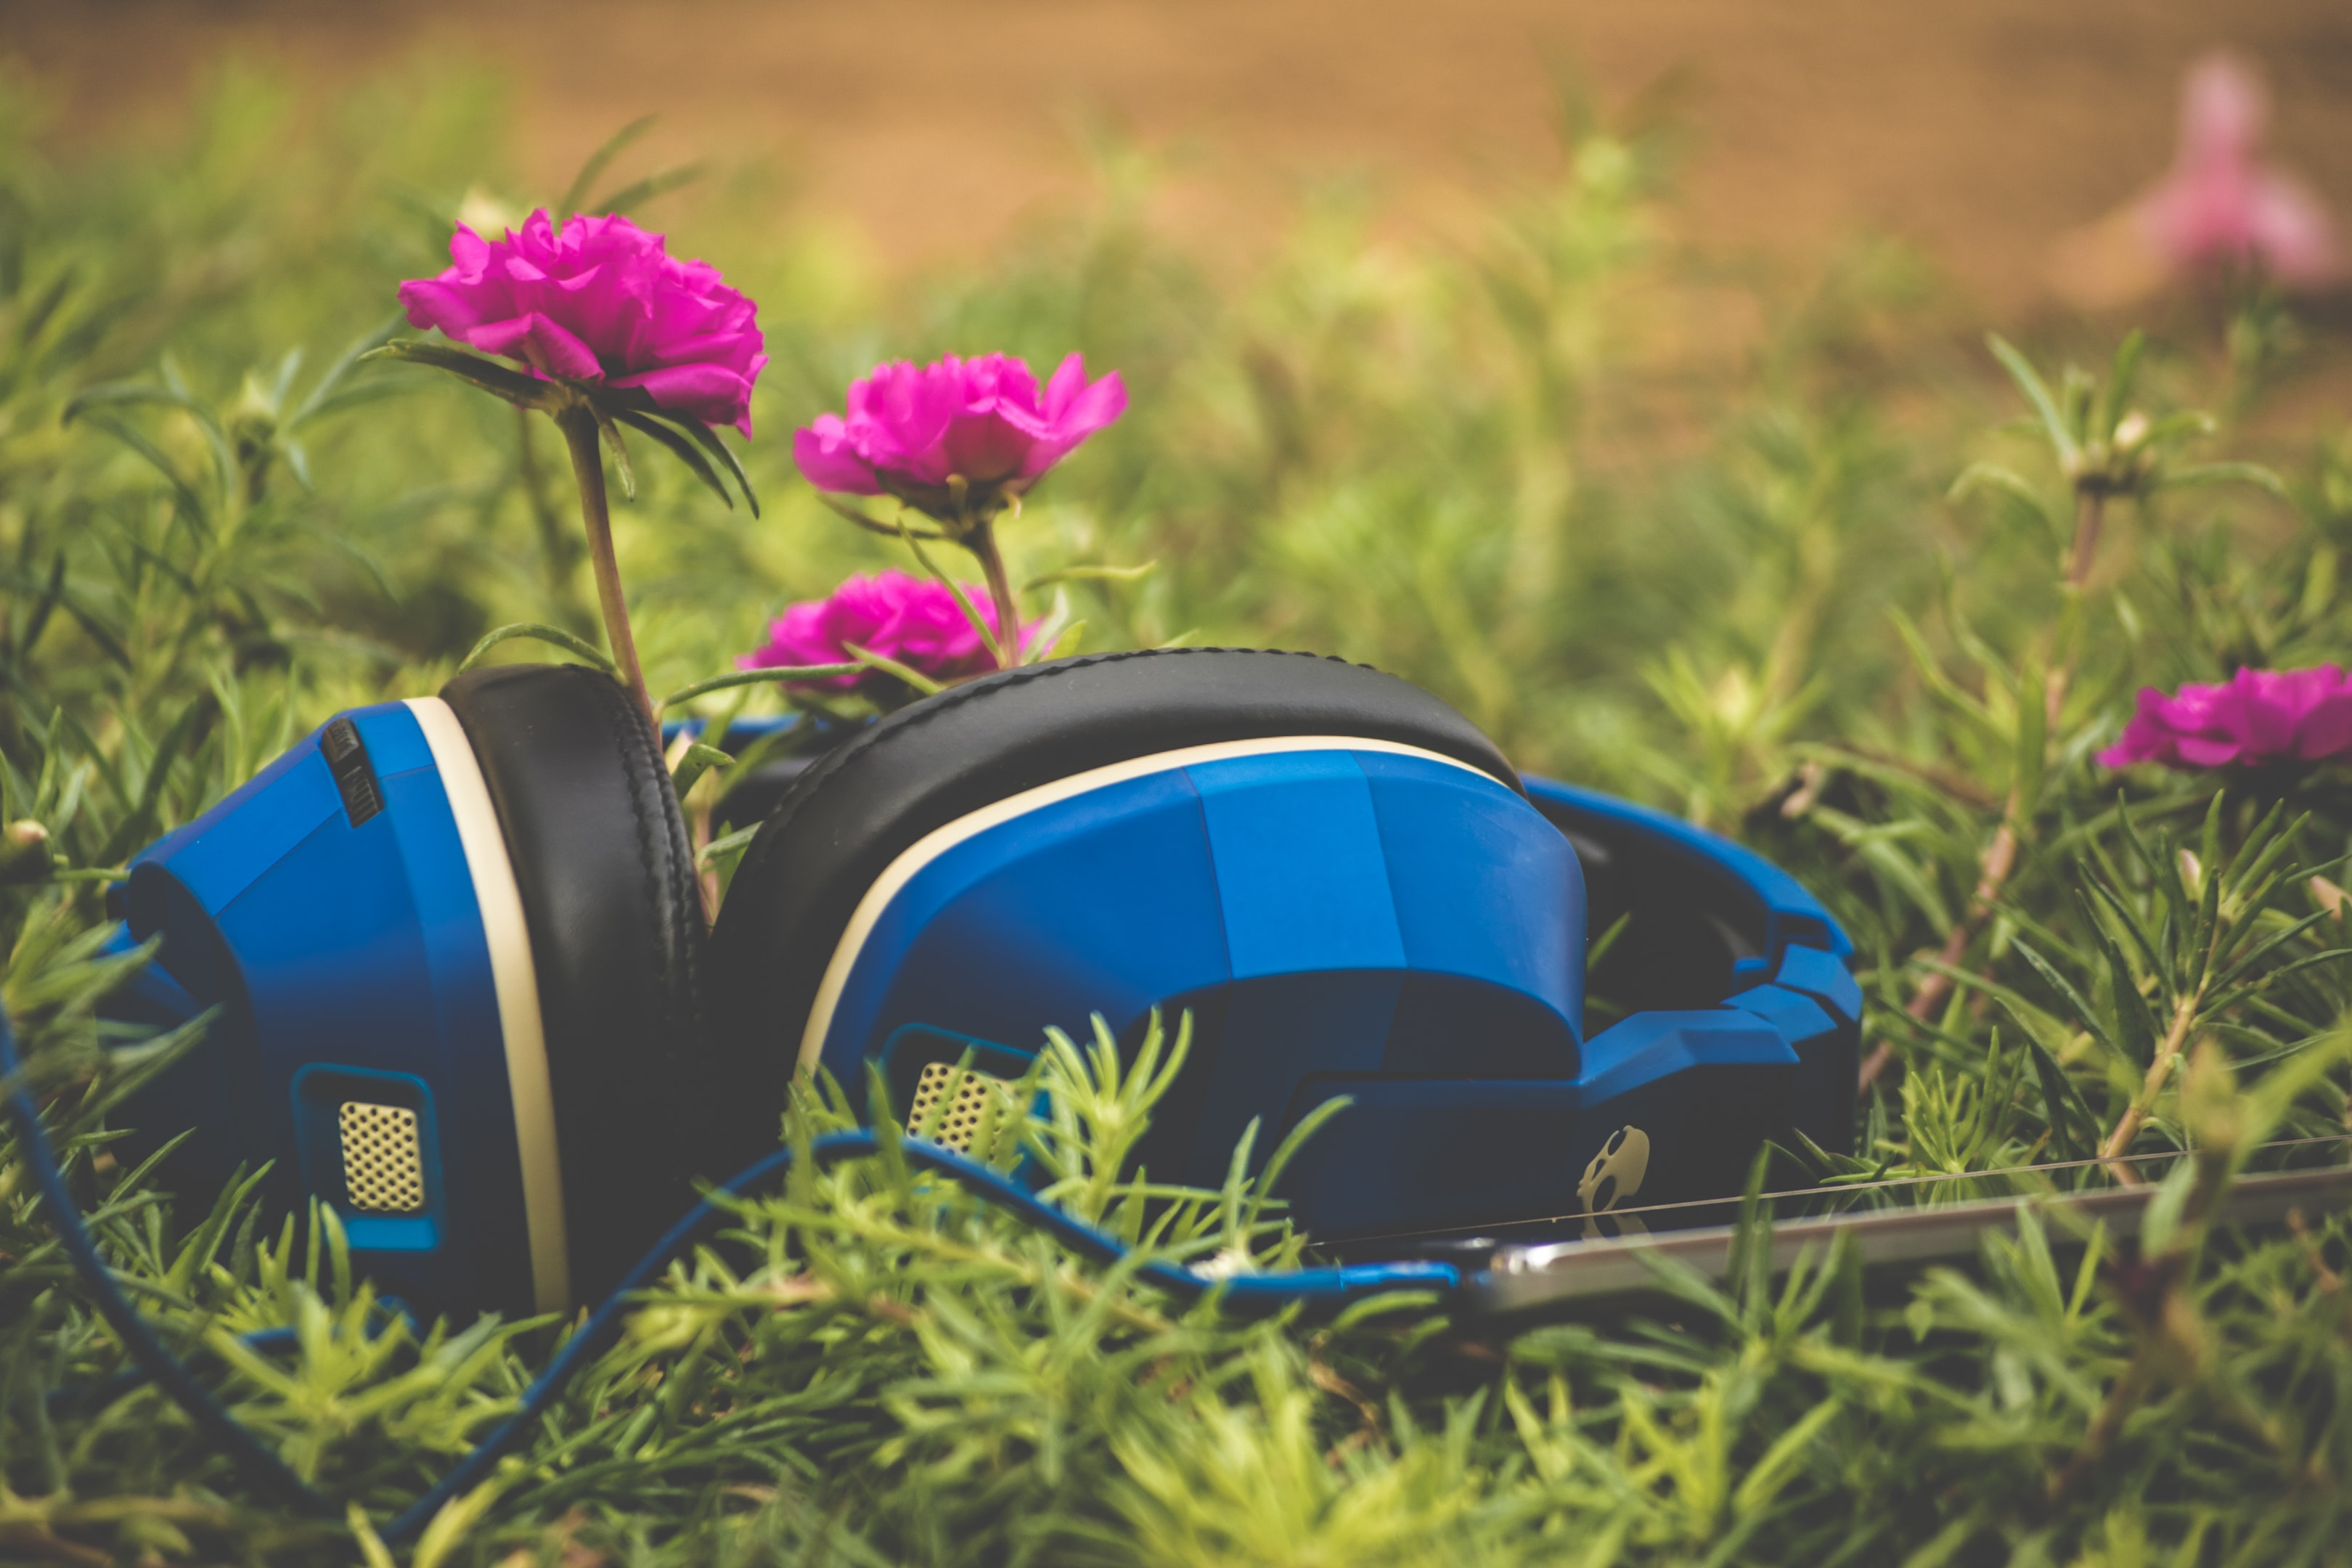 A pair of blue headphones in the grass next to purple flowers